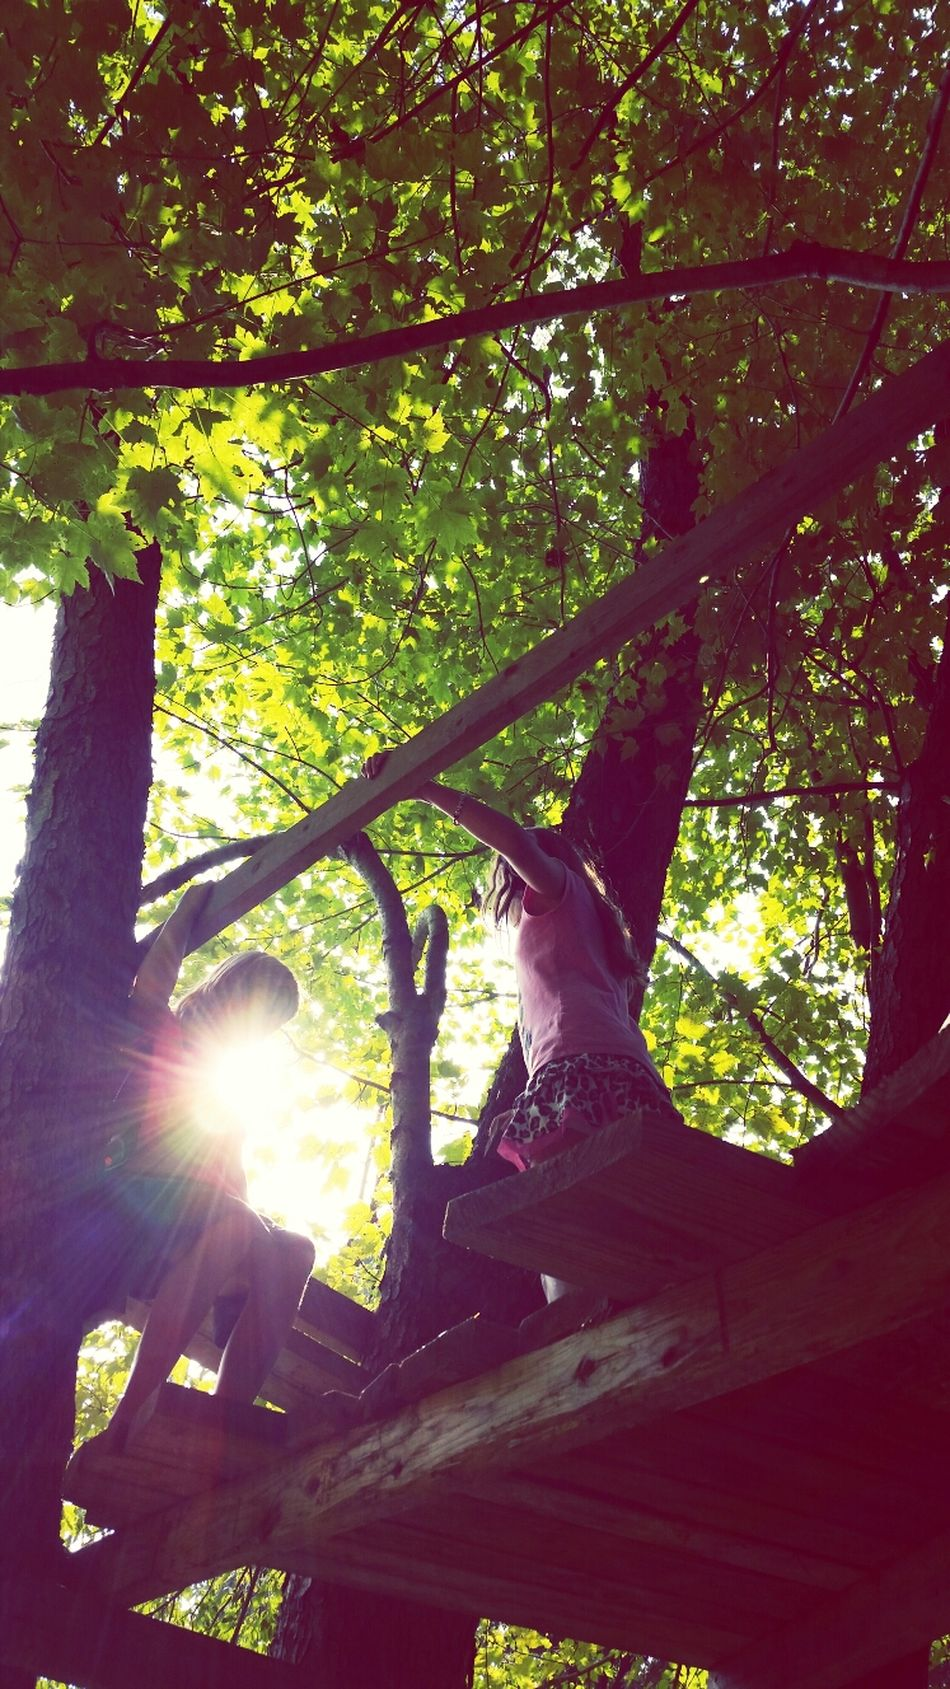 Girls in the tree house Enjoying Life Silhouette Dramatic Sky Beauty In Nature Kid Photography What I Value